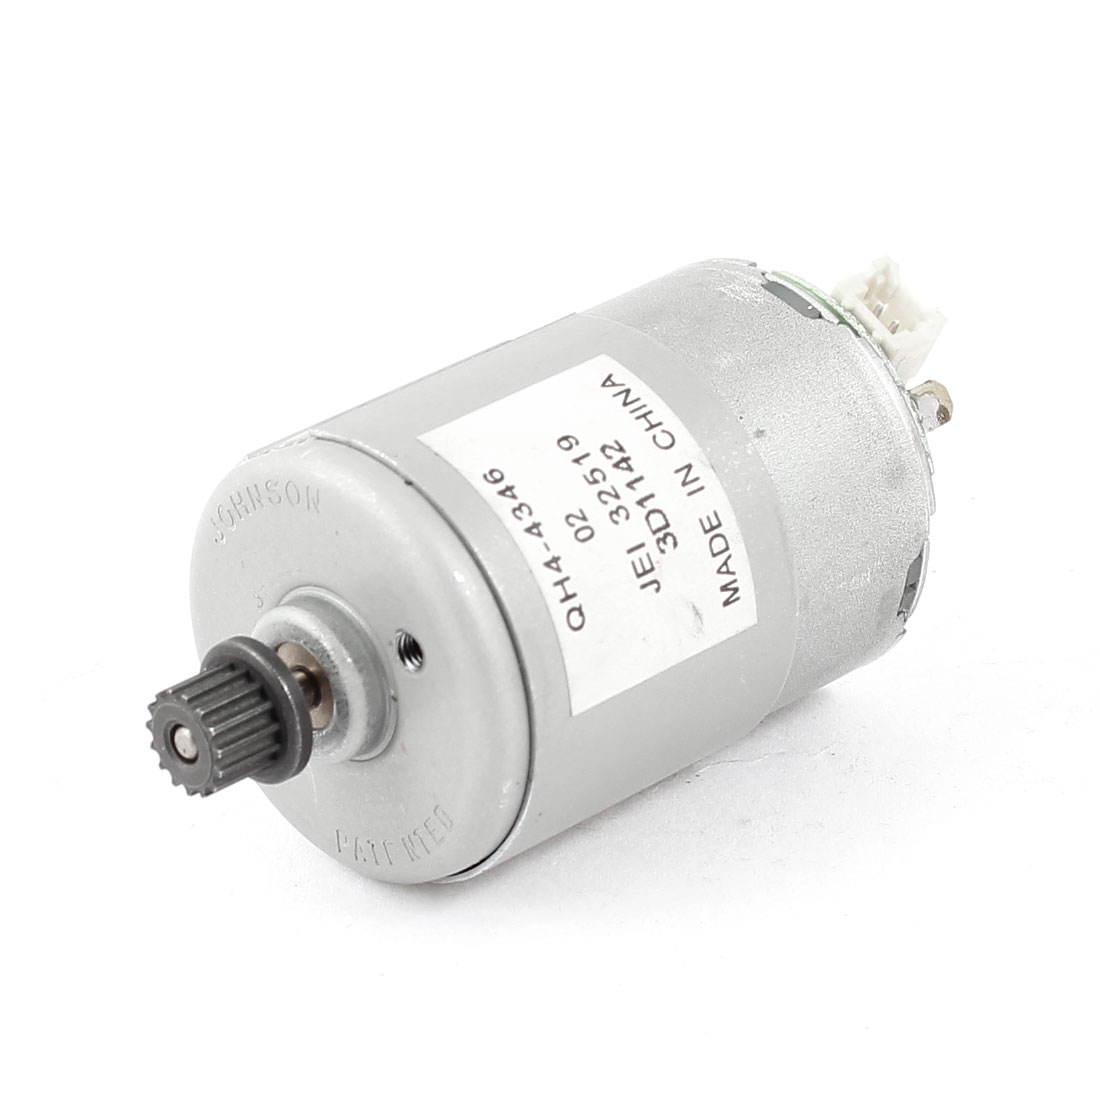 6-24V 2170-9870 RPM High Torque Magnetic Cylinder Electric DC Motor for DIY Toy